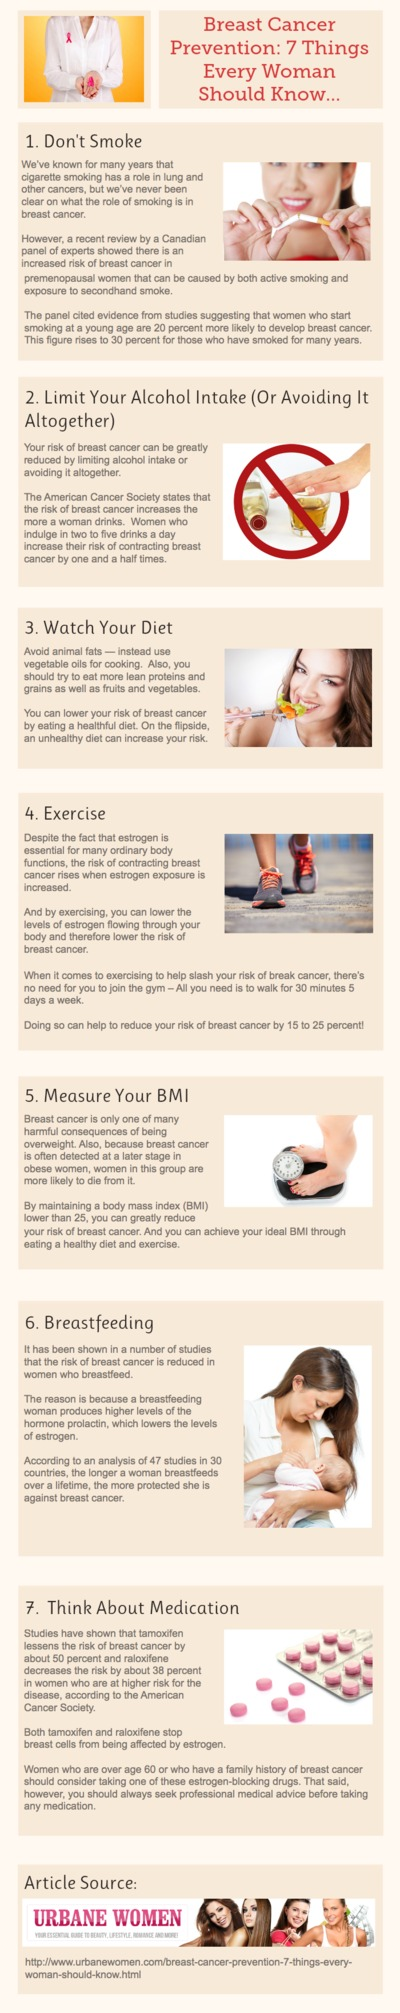 Breast Cancer Prevention: 7 Things Every Woman Should Know [Infographic]